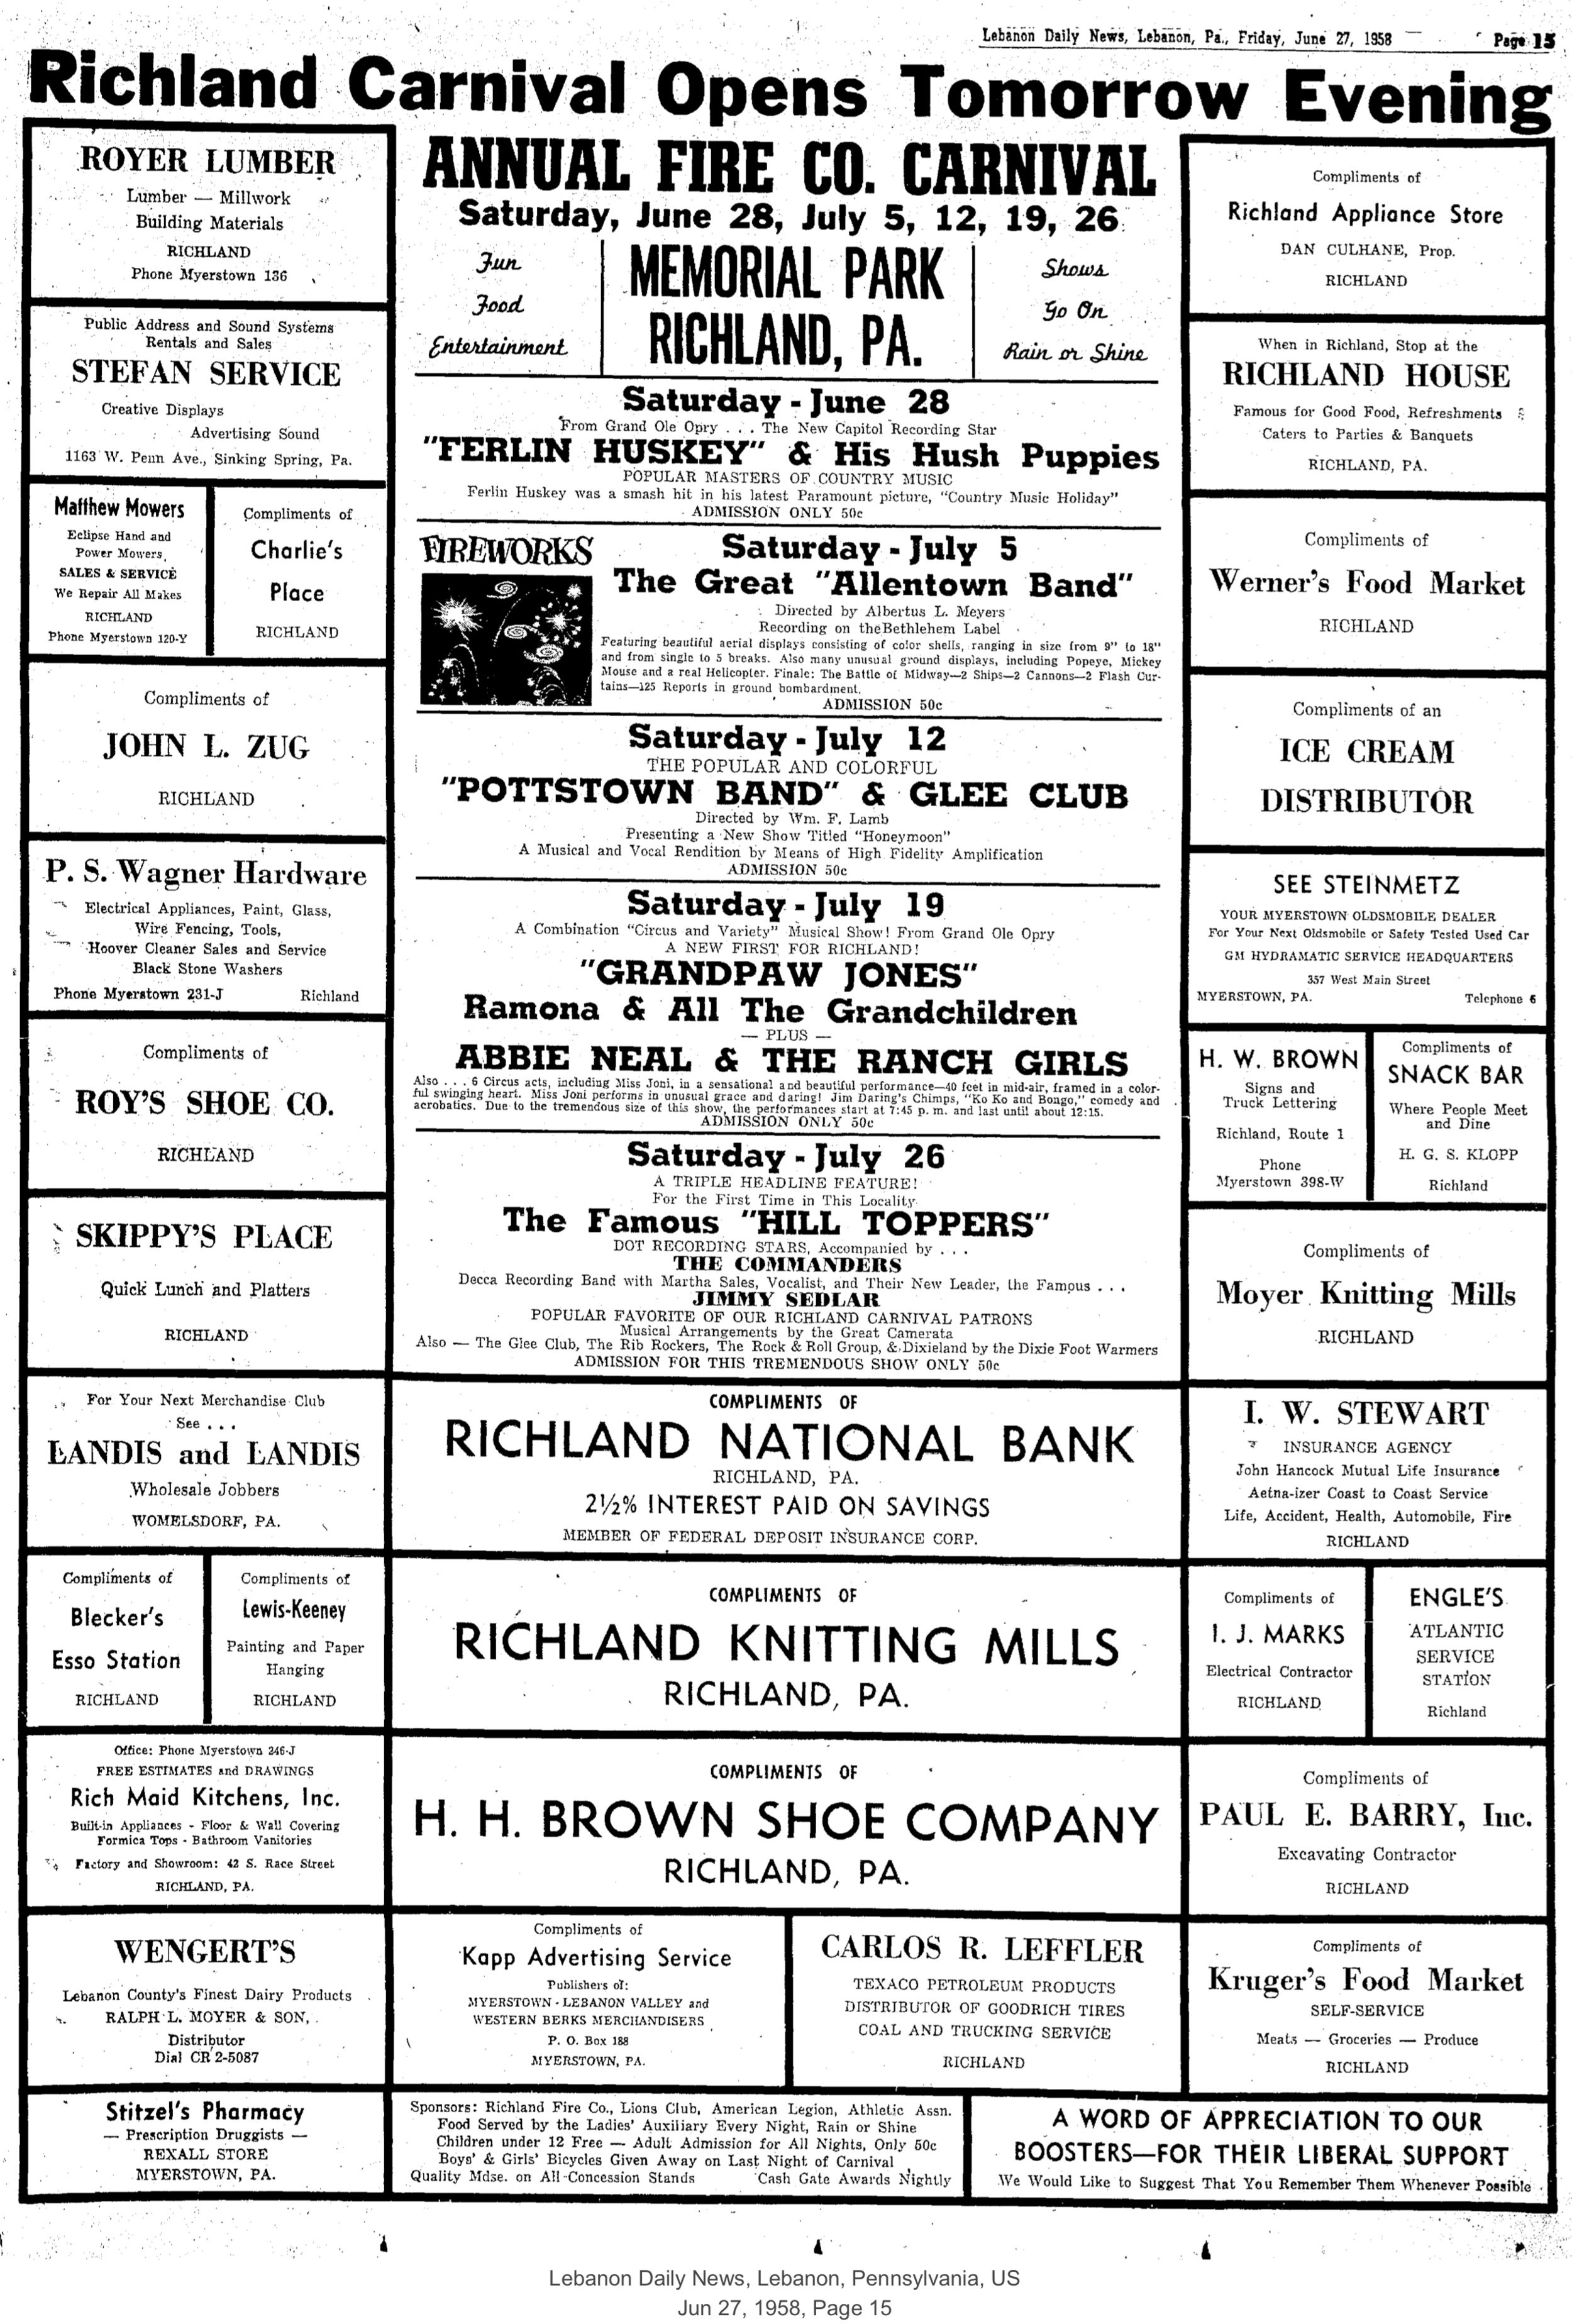 Ad for the Richland Carnival in the June 27, 1958 edition of the Lebanon Daily News